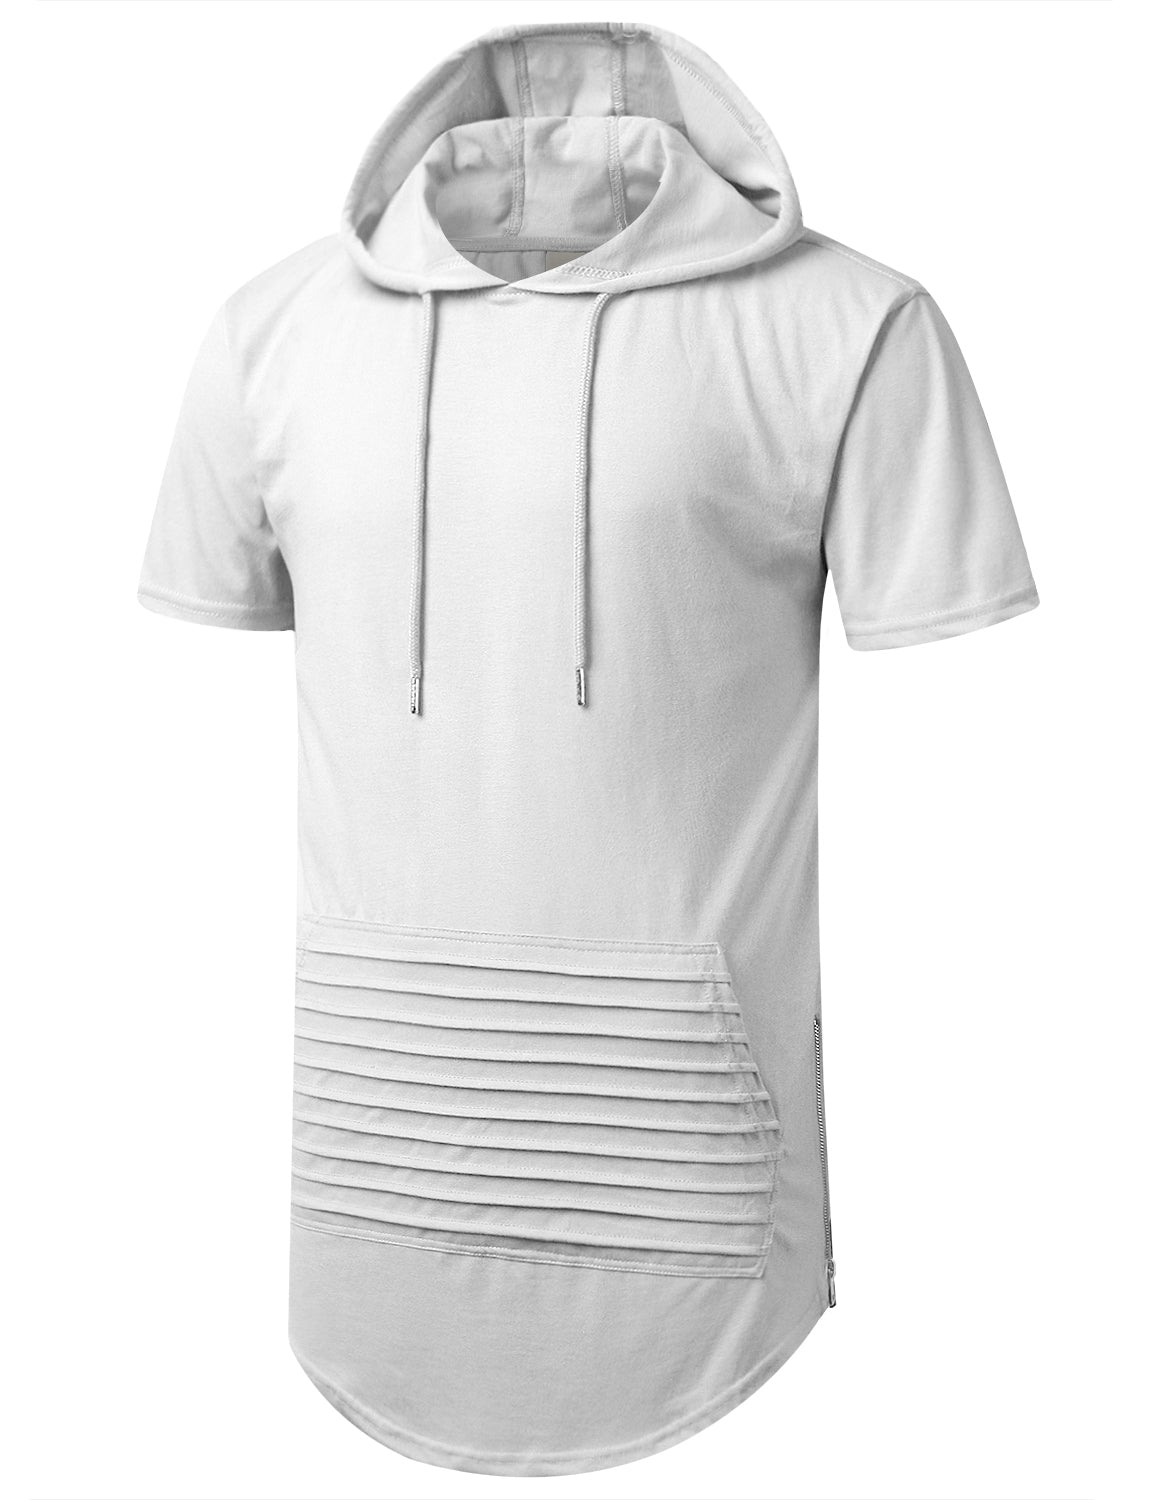 WHITE Short Sleeve Hoodie w/ Zippers - URBANCREWS